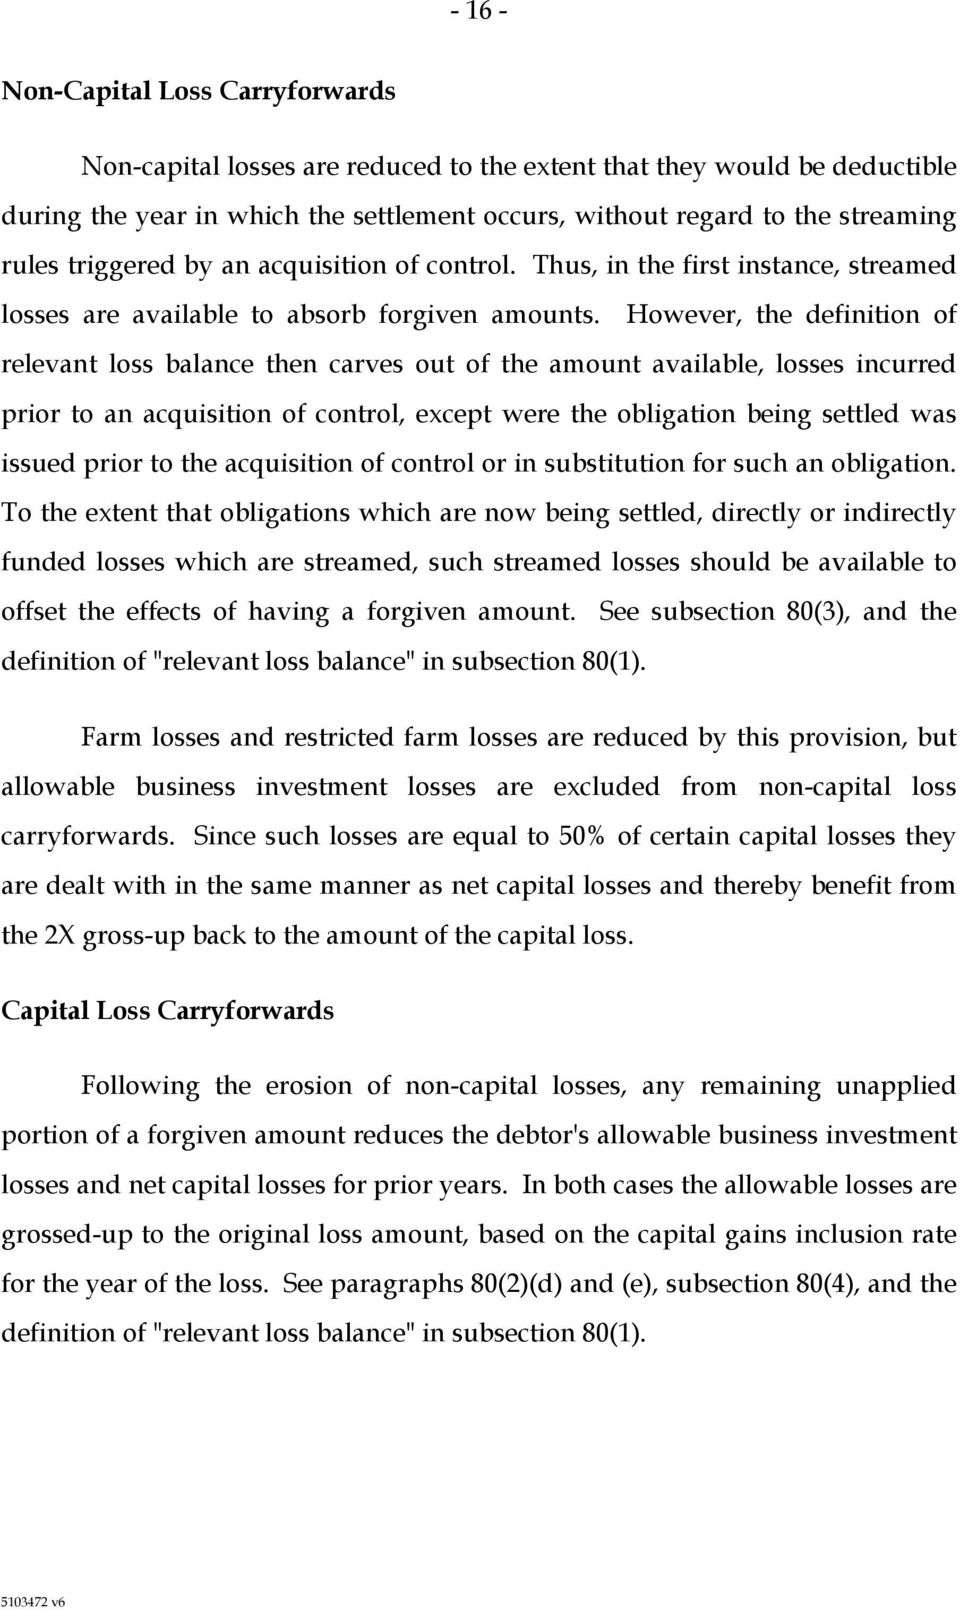 However, the definition of relevant loss balance then carves out of the amount available, losses incurred prior to an acquisition of control, except were the obligation being settled was issued prior